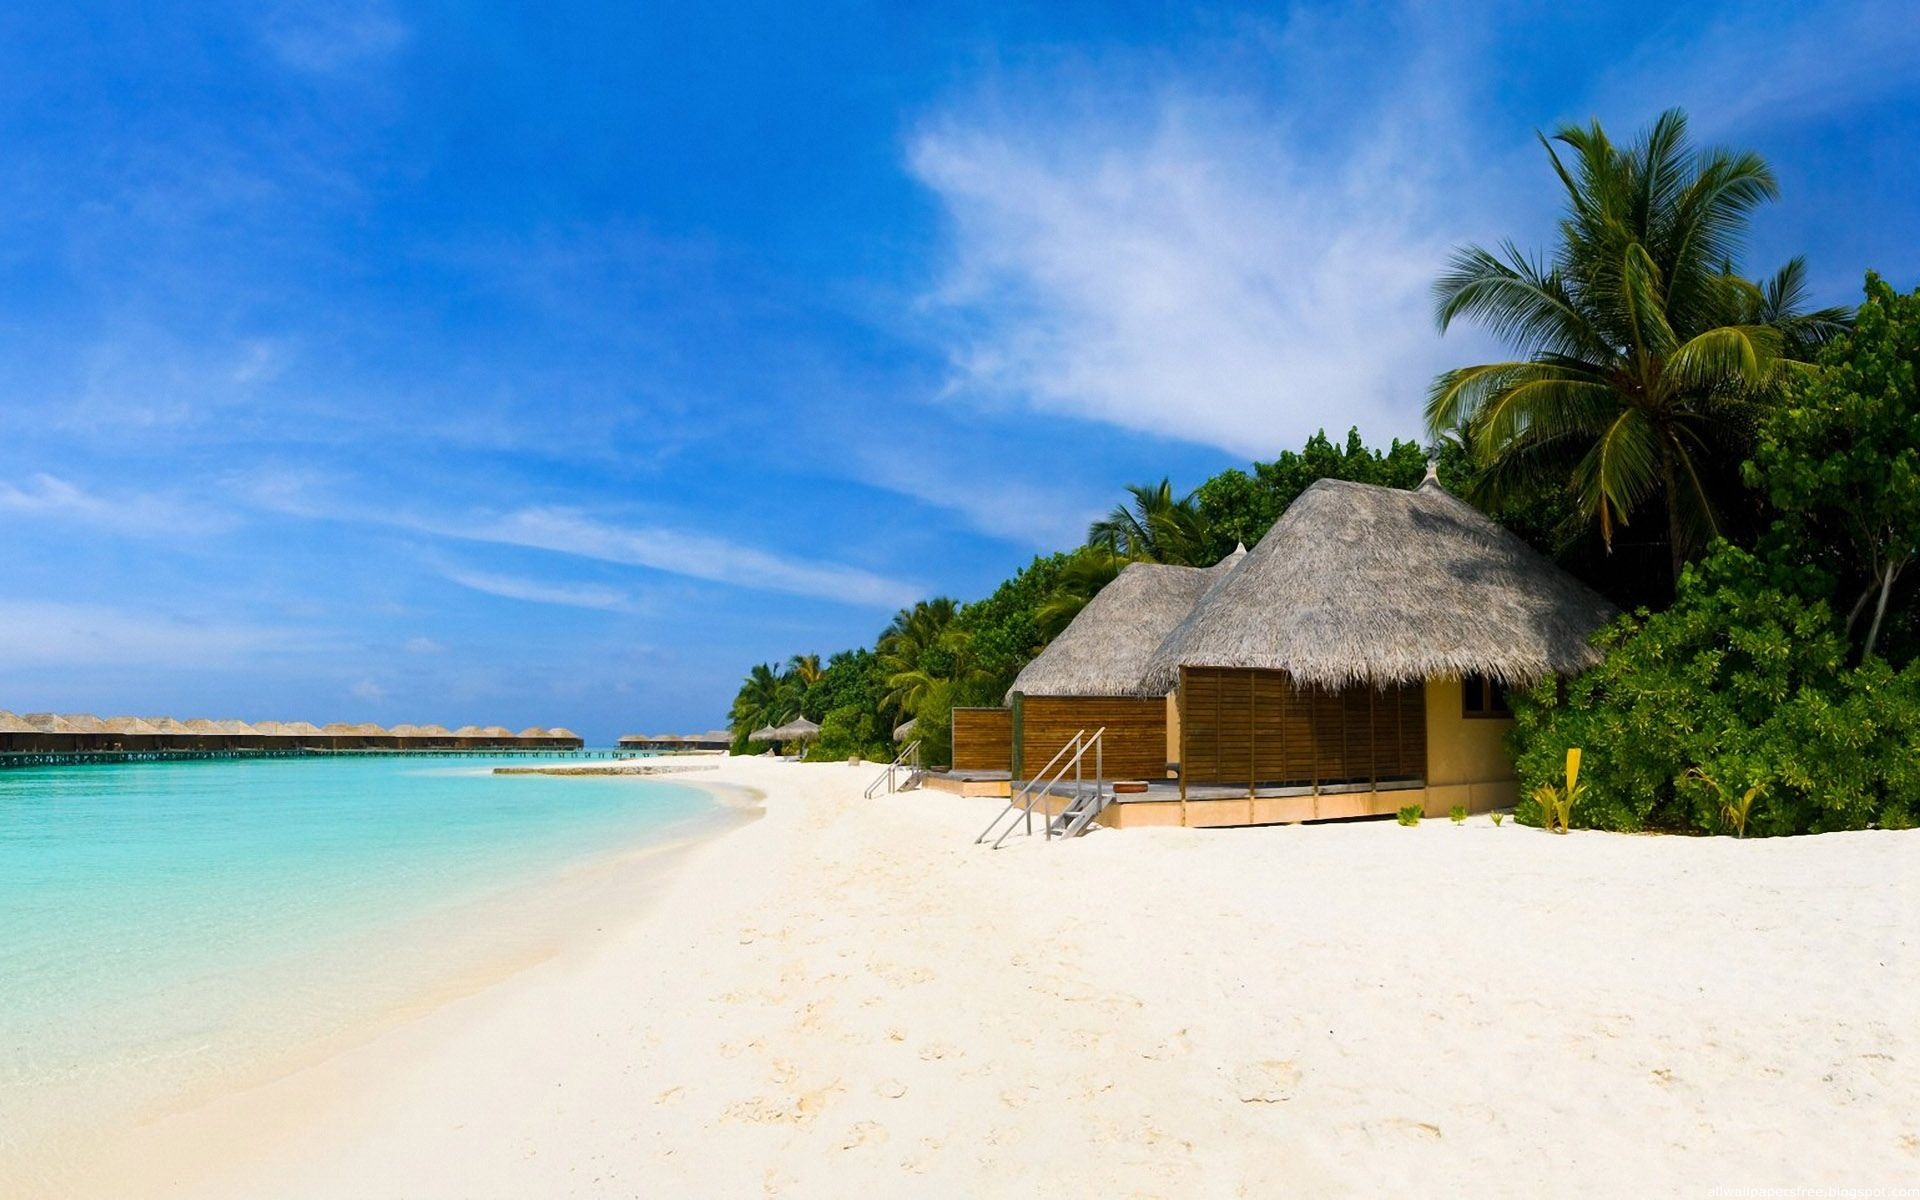 Tropical Island Beach Ambience Sound: Amazing Holiday Beach Wallpapers Hd